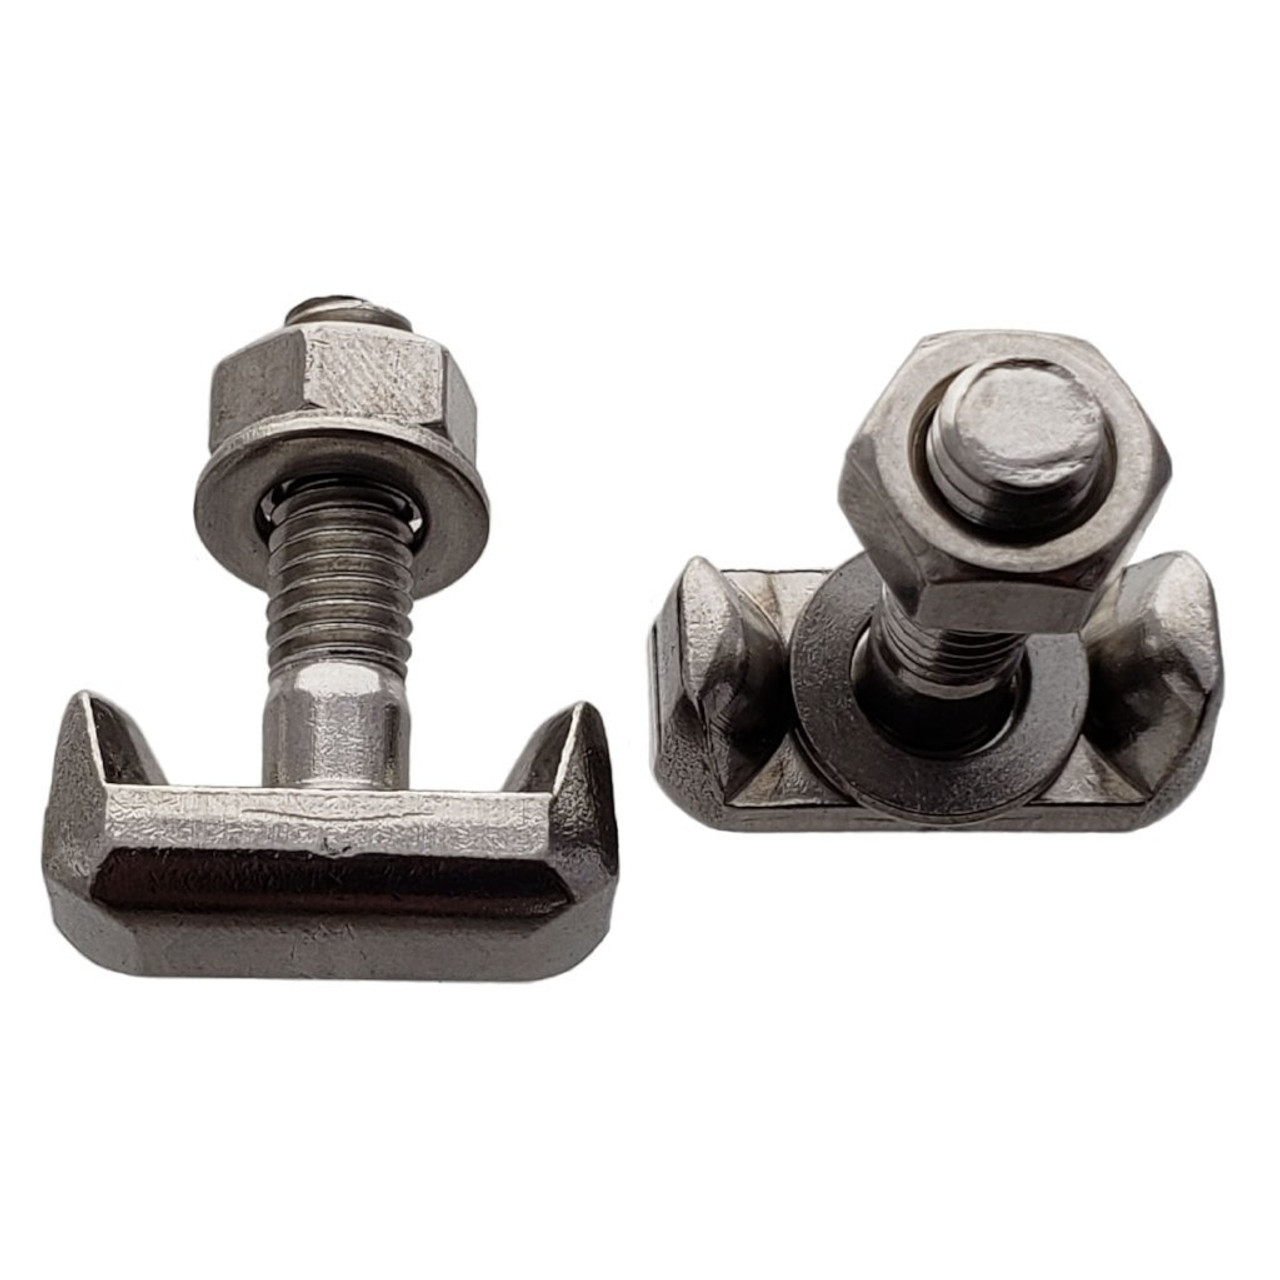 Battery Terminal T Bolt, Interchanges: Dorman 64740 GM 19116852, Audi VW 6X0-915-138, BMW 61128373946, Stainless